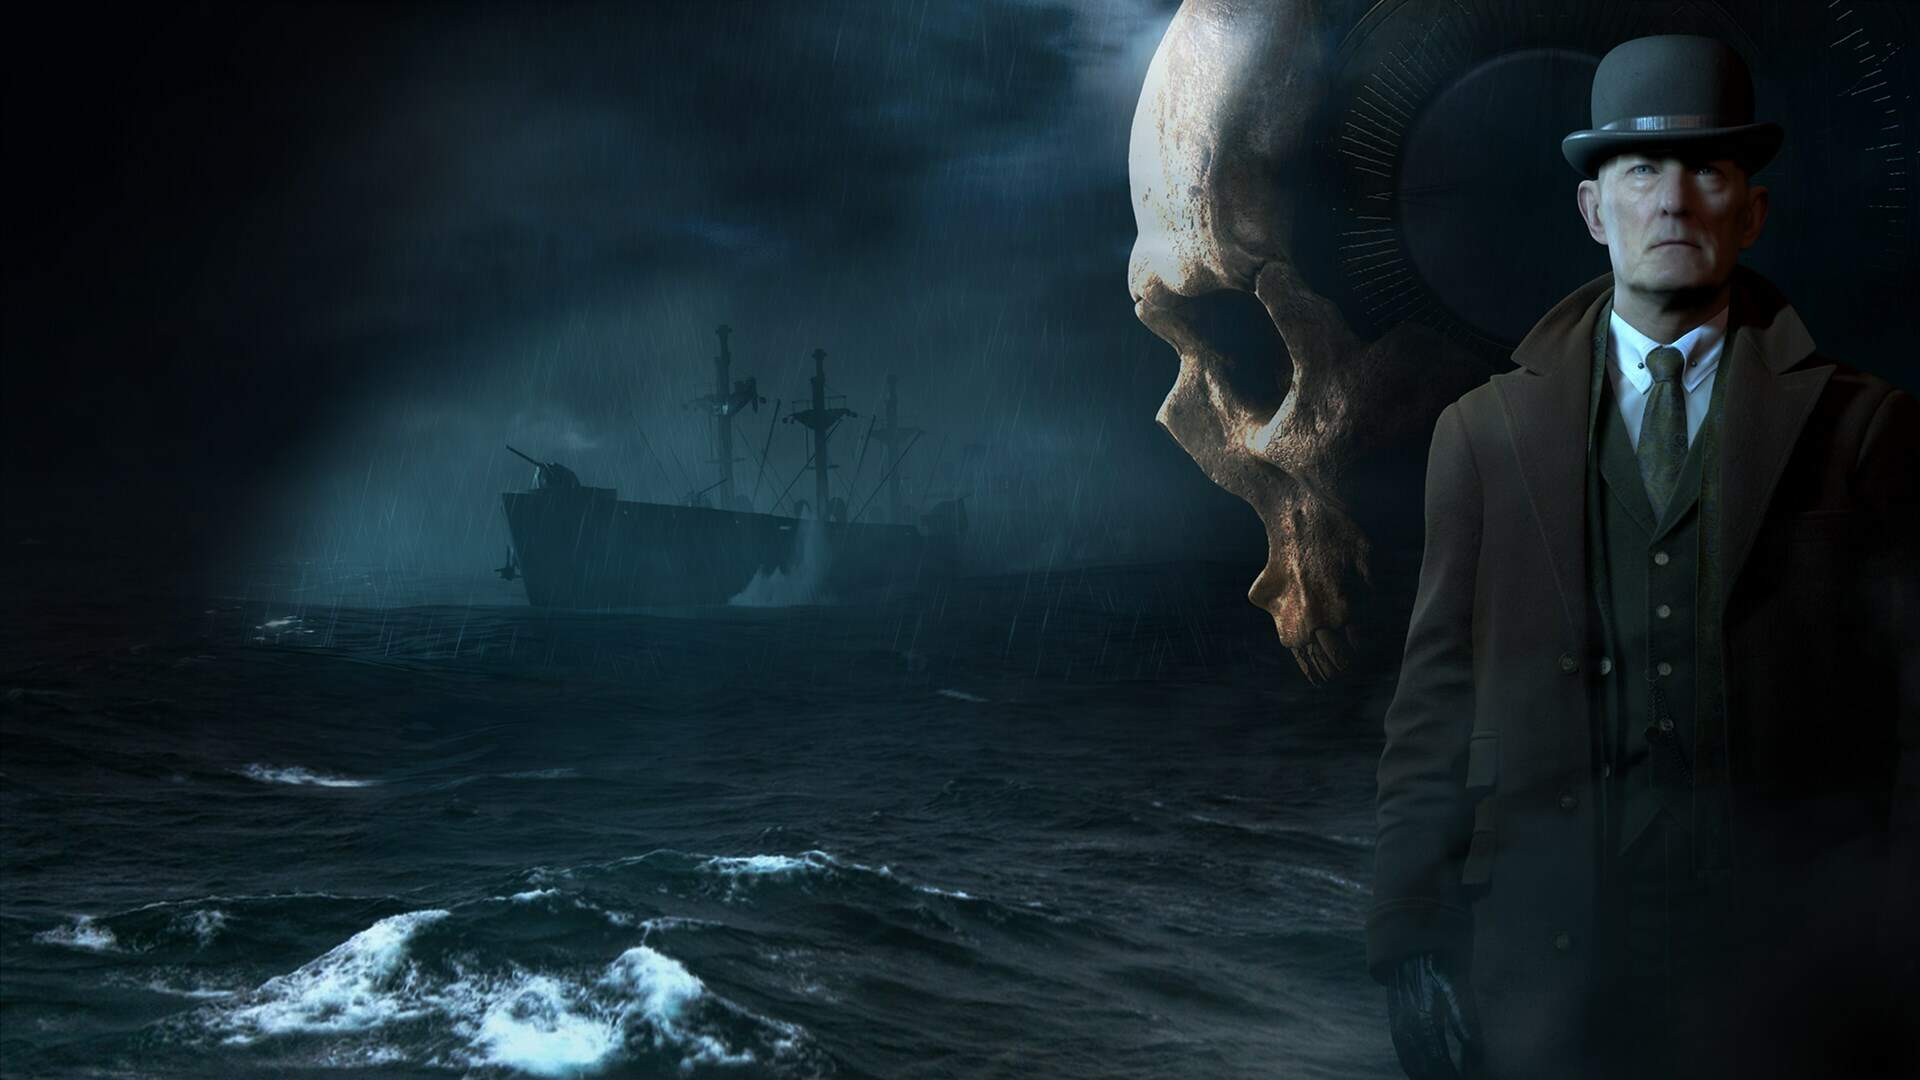 Man of Medan Endings - All the Endings Explained, How to Save Everyone